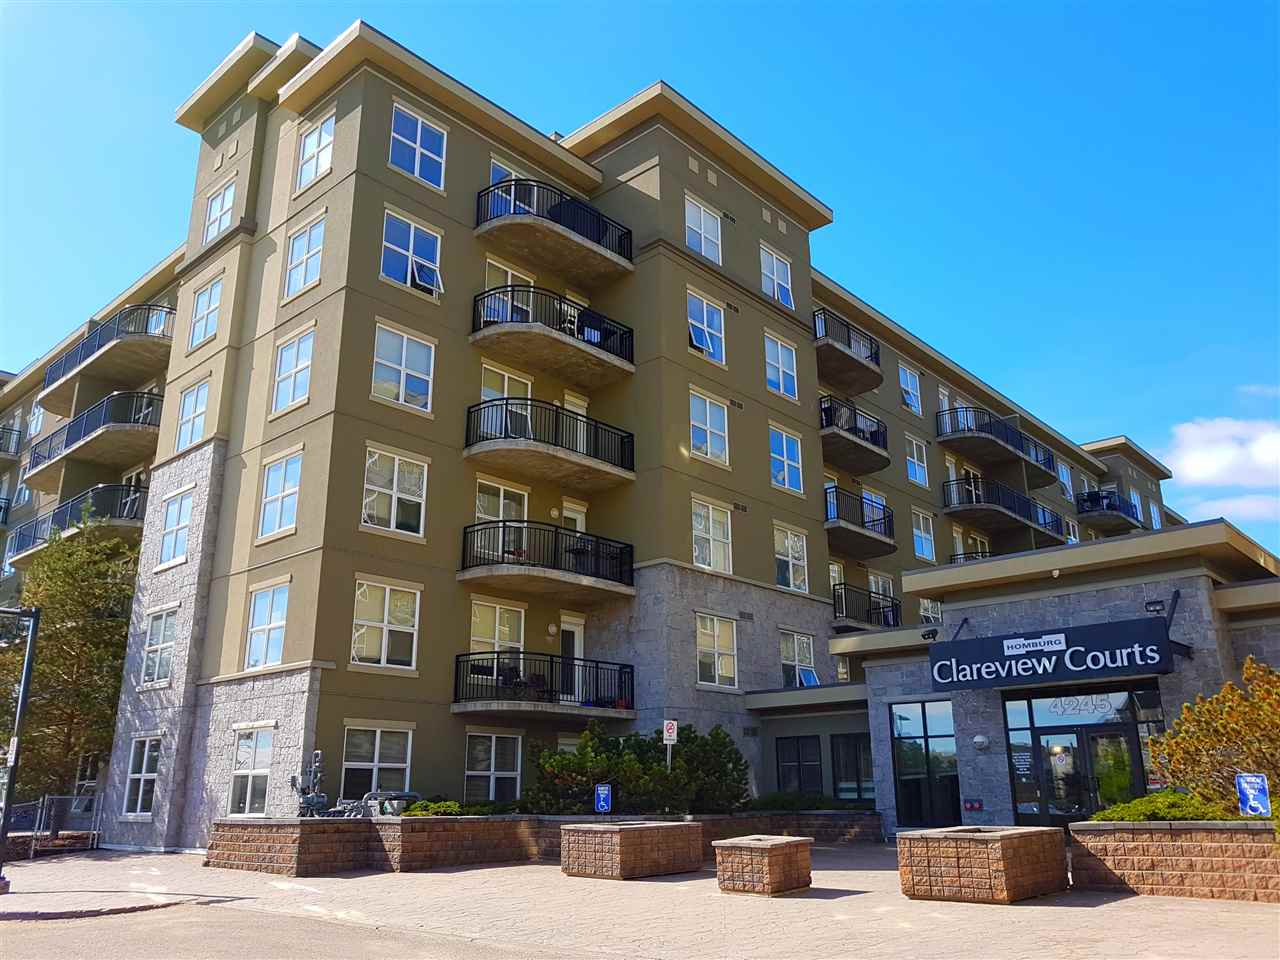 Photo 2: 2-108 4245 139 Avenue NW in Edmonton: Zone 35 Condo for sale : MLS(r) # E4065624